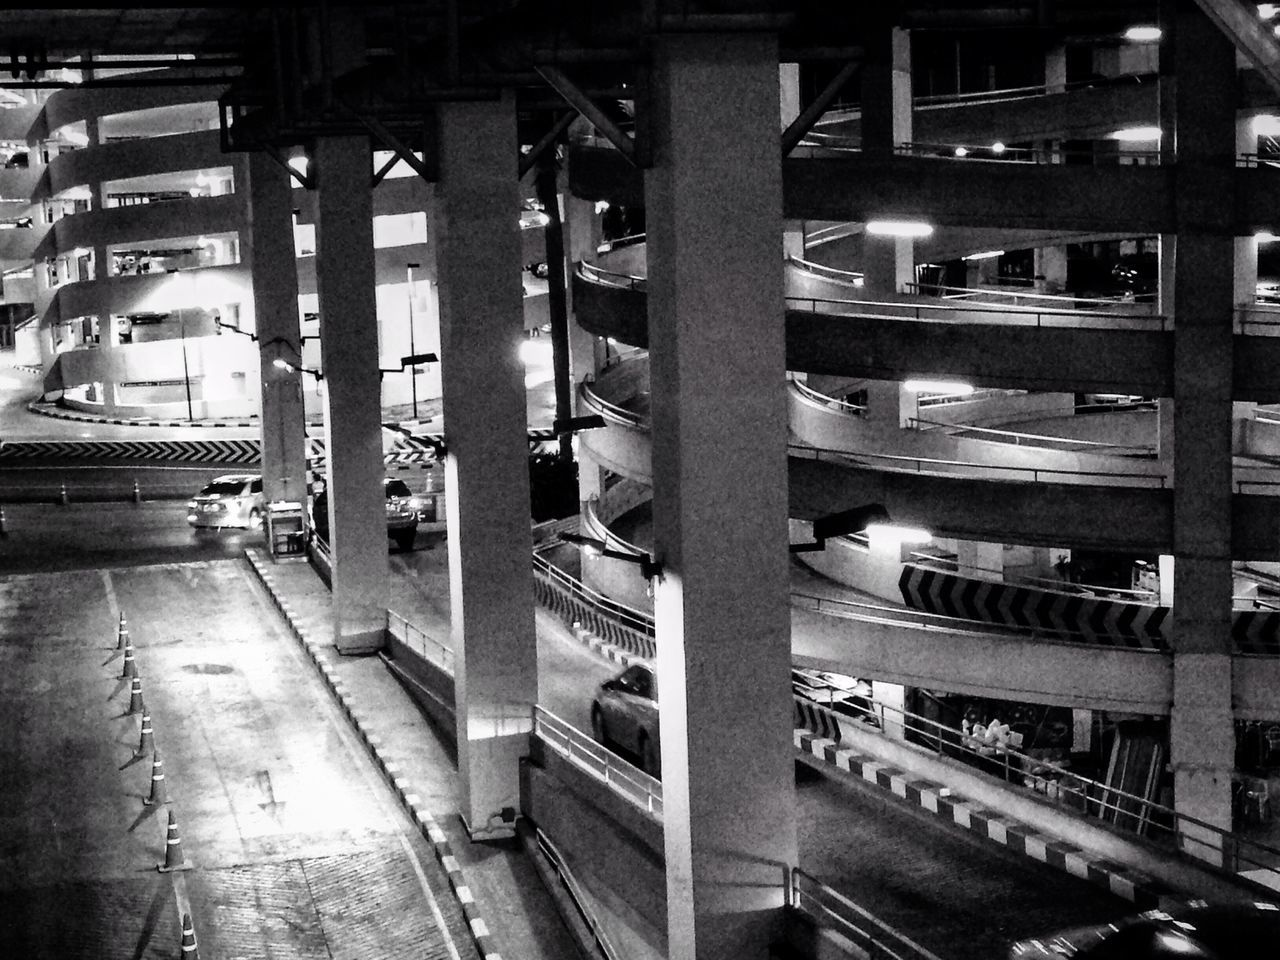 architecture, built structure, pipe - tube, indoors, illuminated, building exterior, no people, industry, day, basement